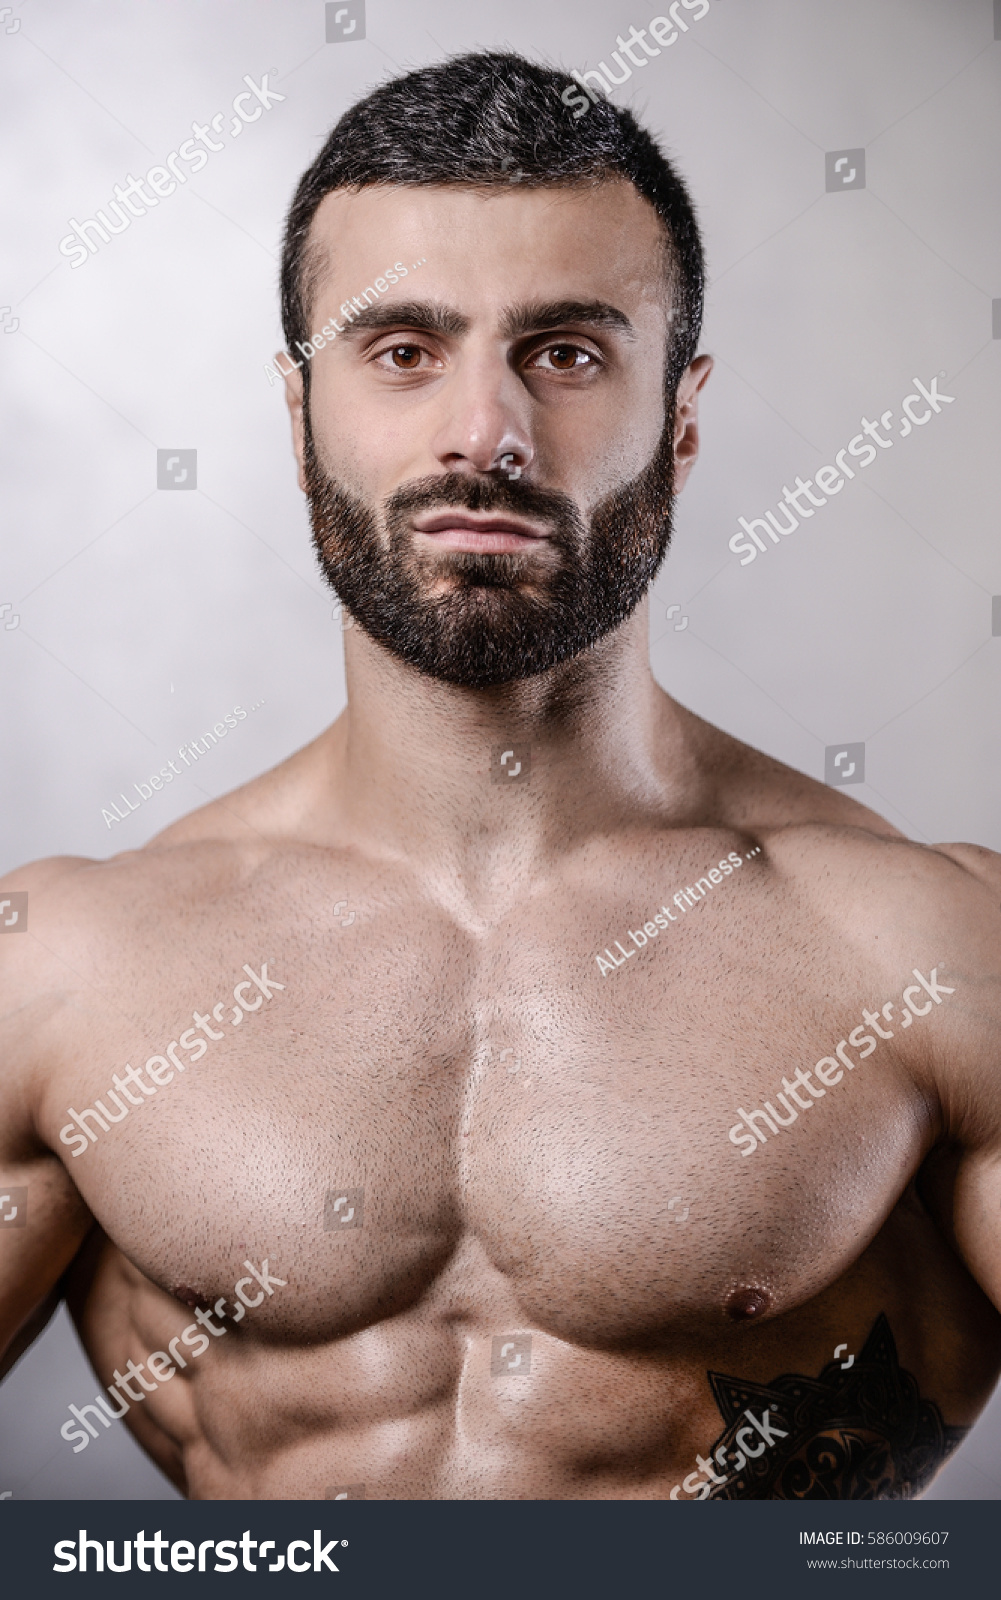 Bearded Bodybuilder With Dumbbells Stock Photo And Royalty Images On Fotolia Pic 113709064